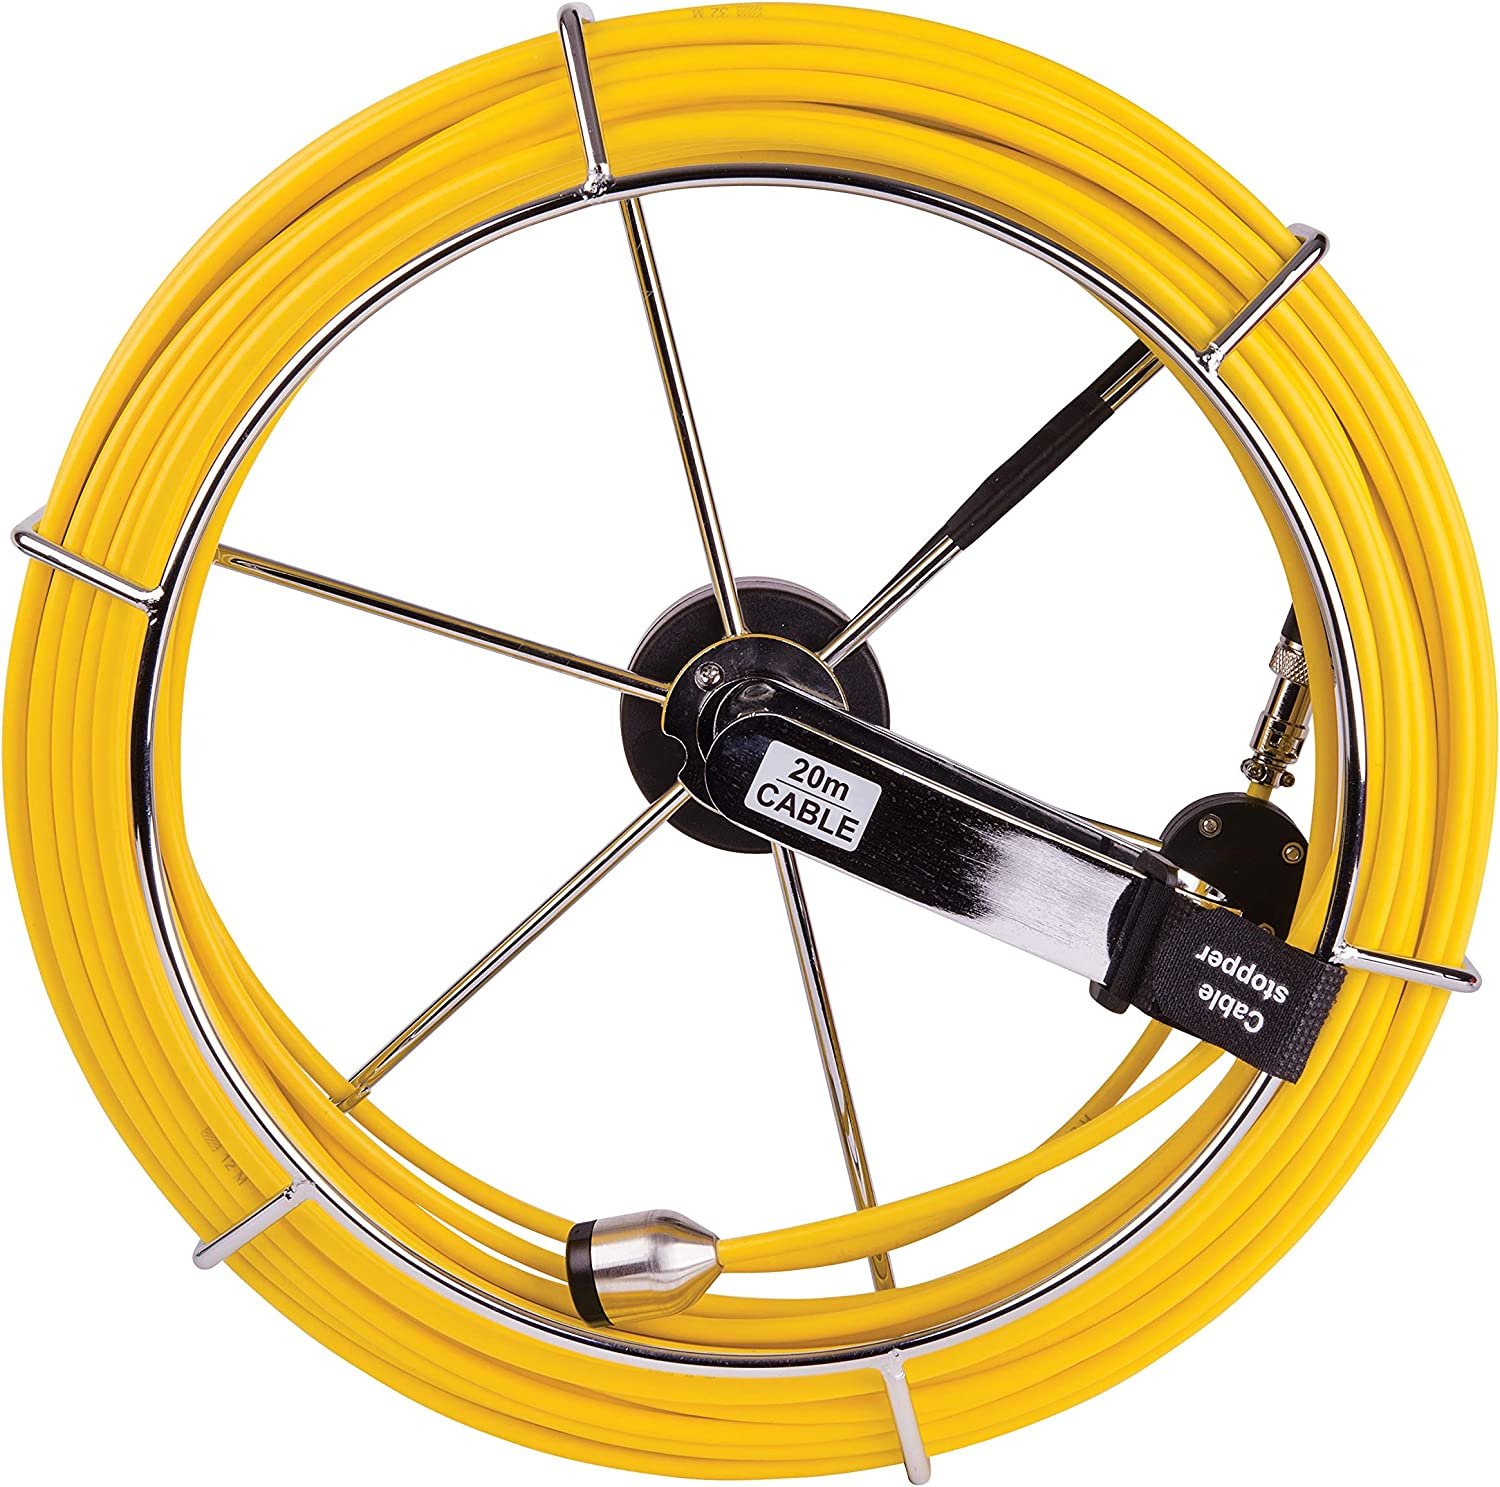 REED Instruments R9000-20M Directly managed store Replacement 65.6' 20m Cable Indianapolis Mall